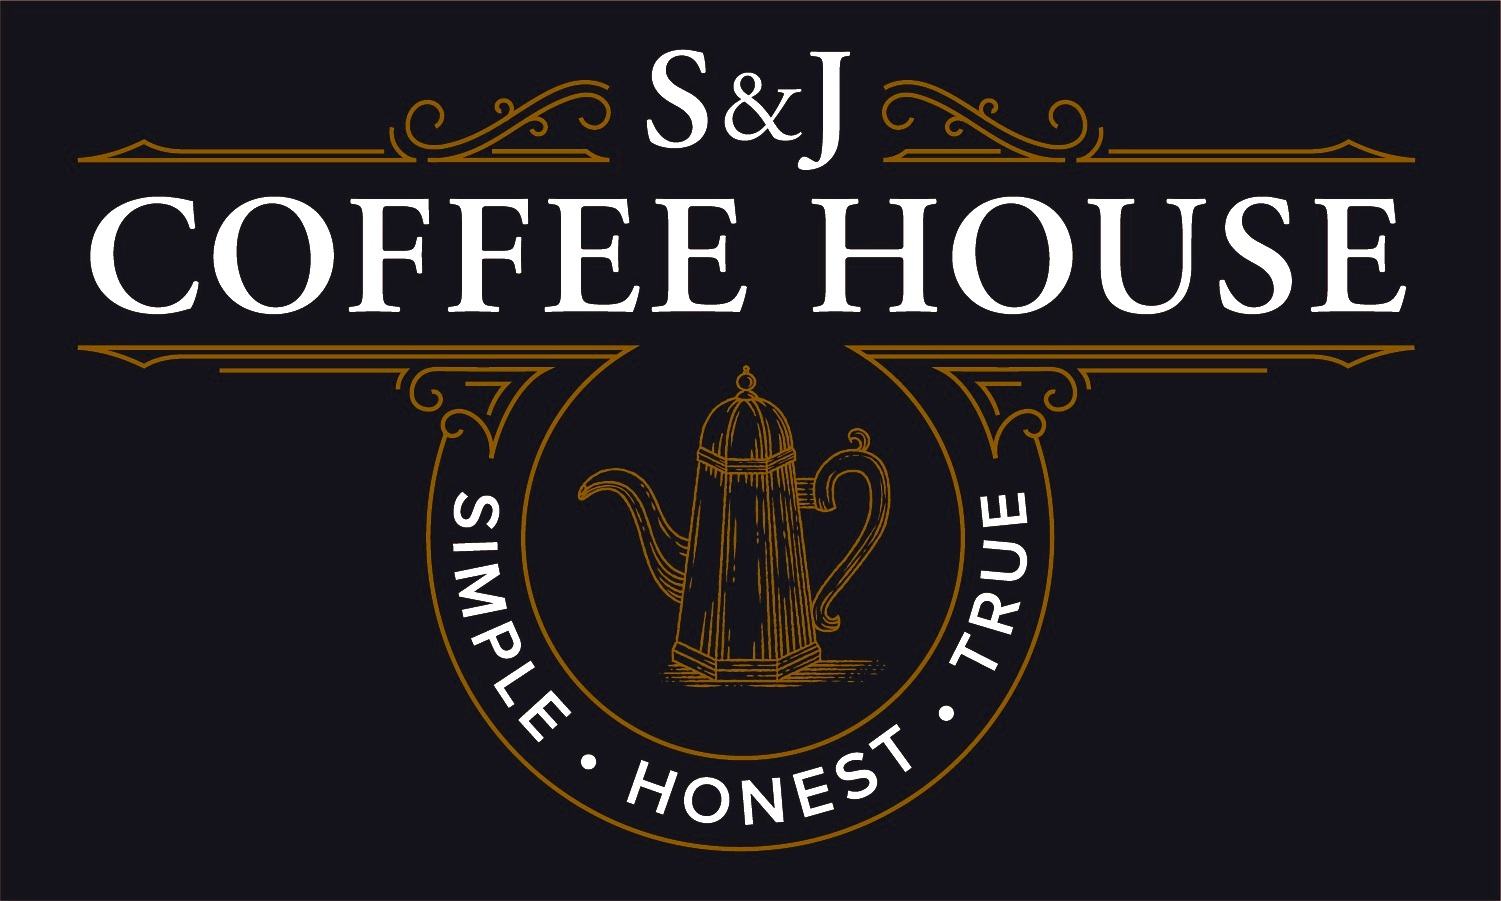 S & J  Coffee House, LLC  112 SW 6th Ave.